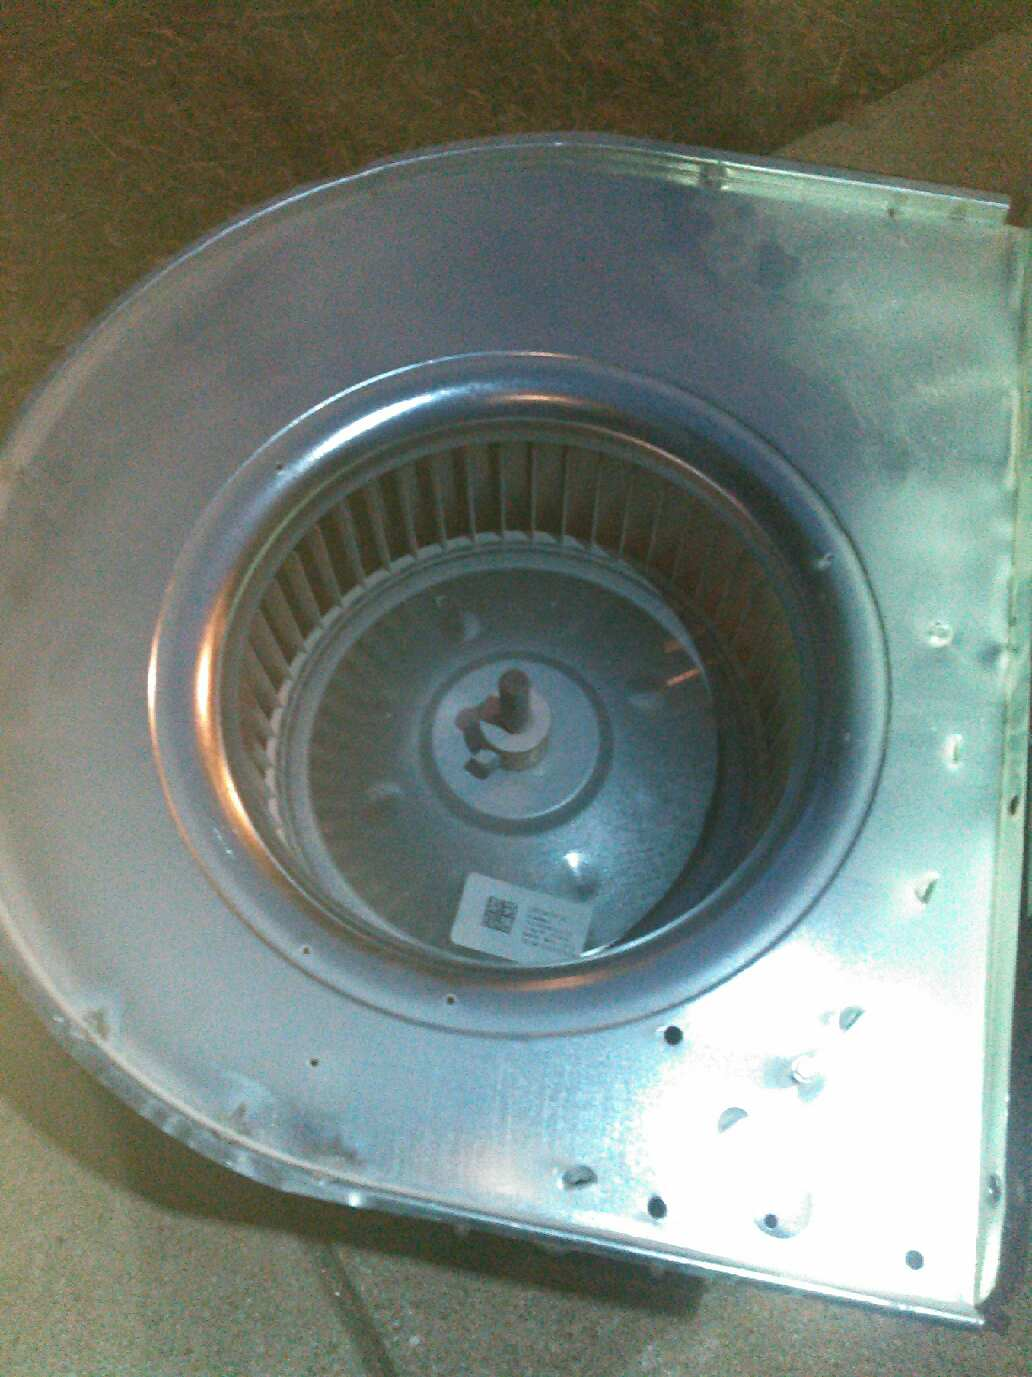 Blower wheel after cleaning